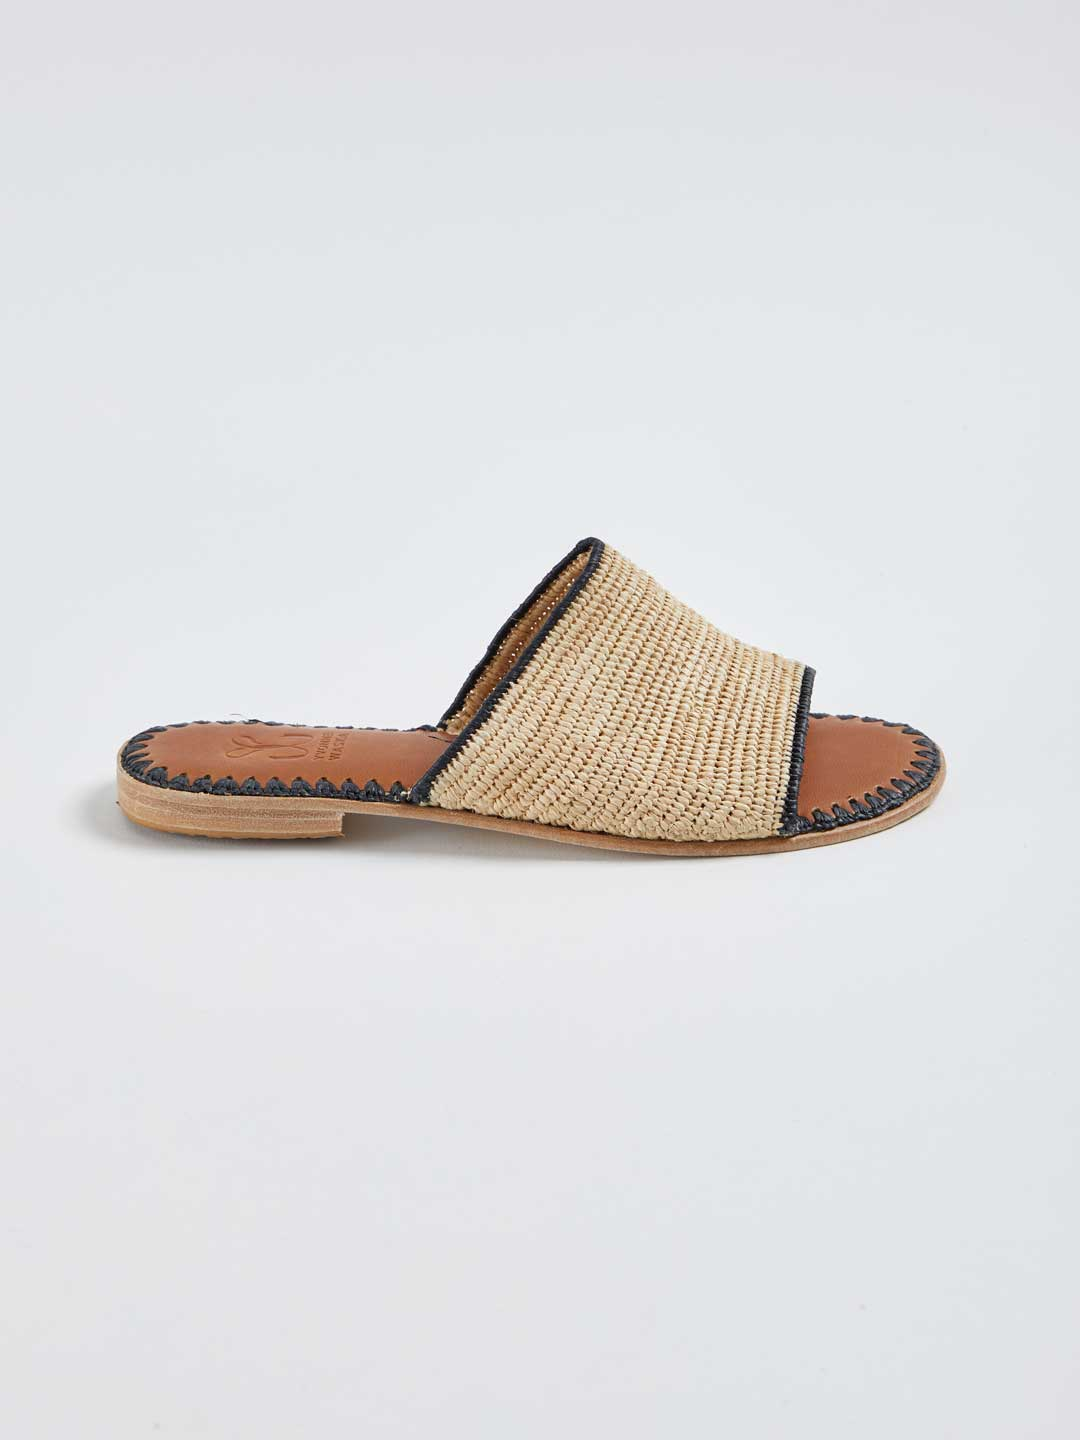 ROSALIE Hand Woven Flat Sandals - Natural